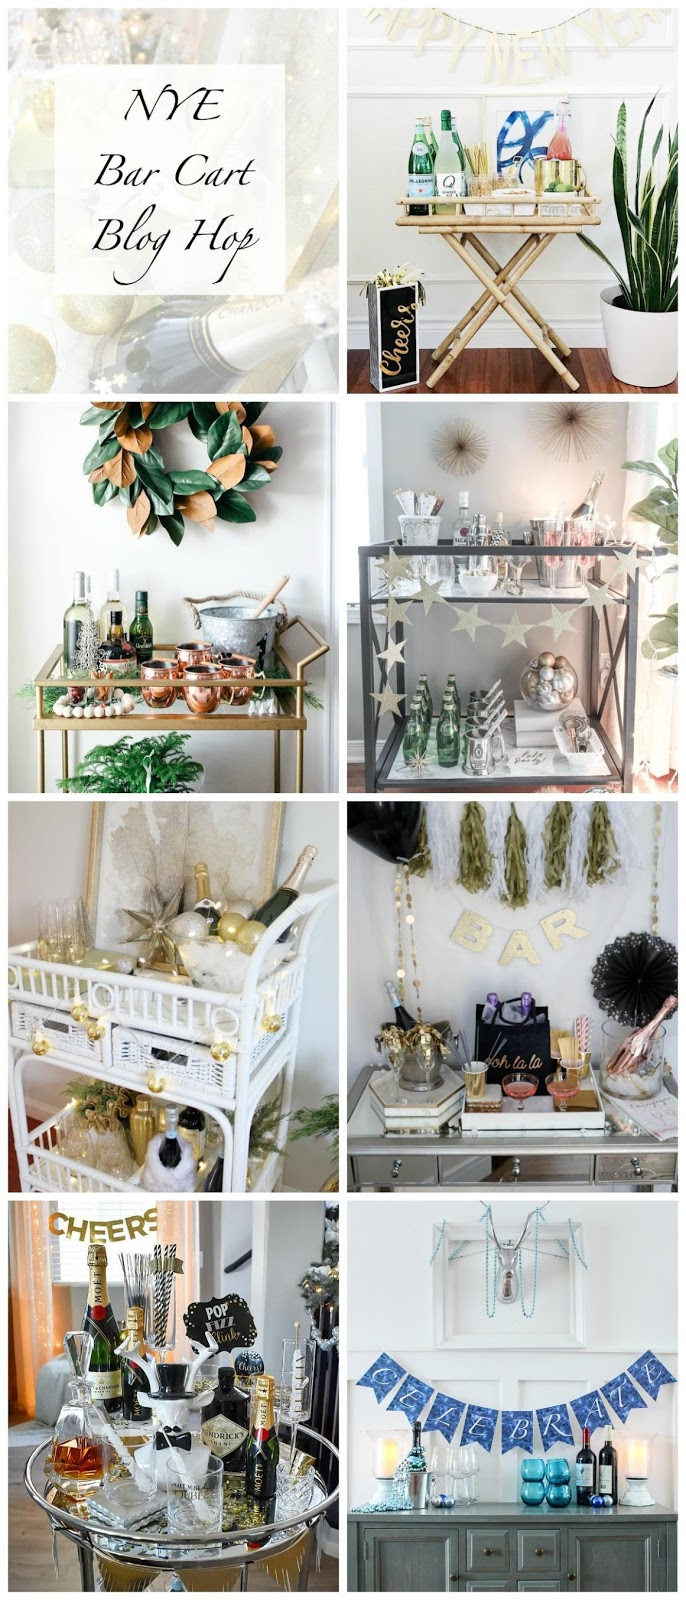 7 New Year's Eve Bar Cart Decor, Party Supply & Entertaining Ideas! #newyearseve, party #supplies #barcart #barware #Prosecco #champagne #banner #decor #holiday #entertaining